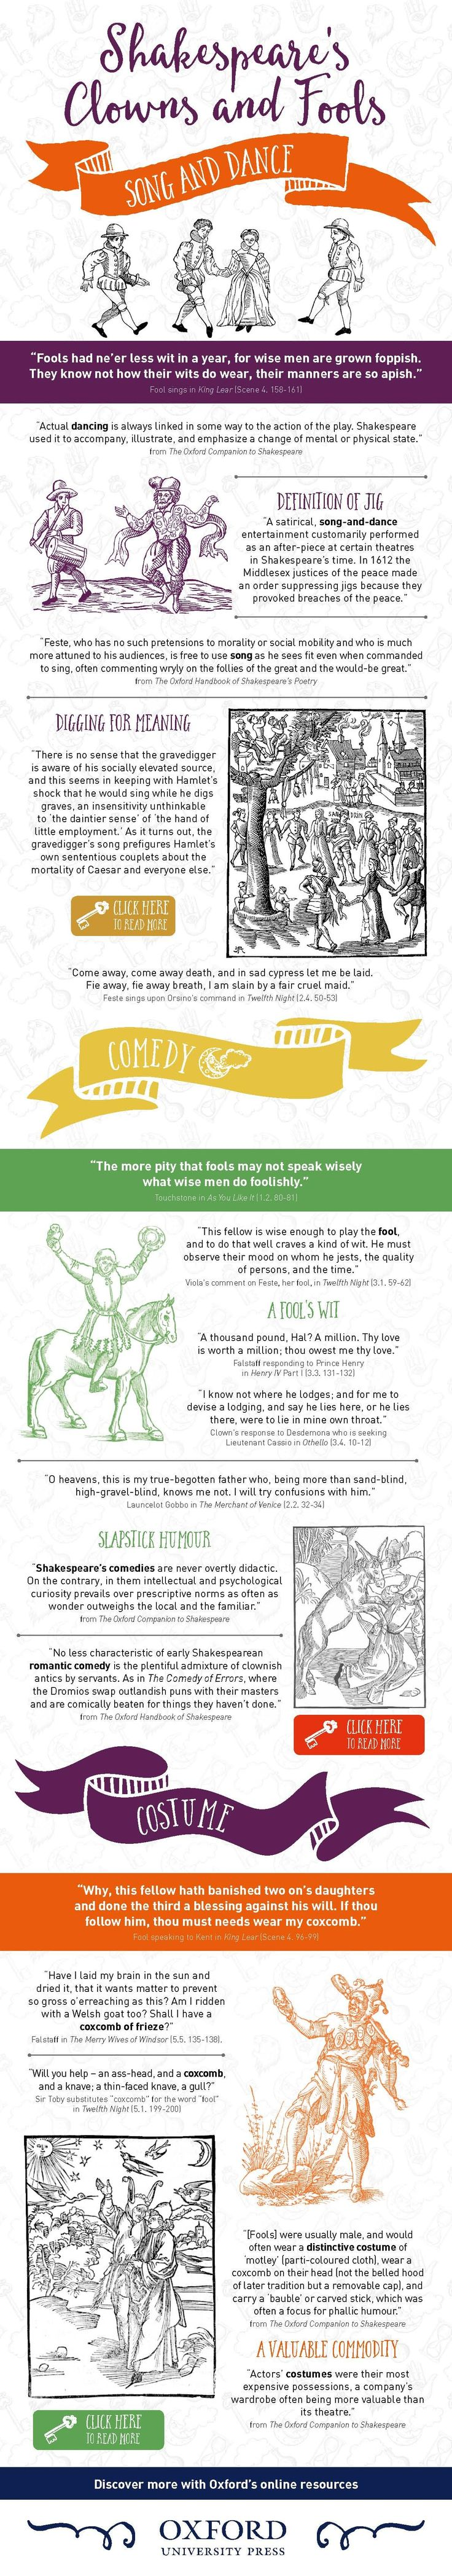 Shakespeare's fools: What you need to know about clowns and fools in Shakespeare's works.